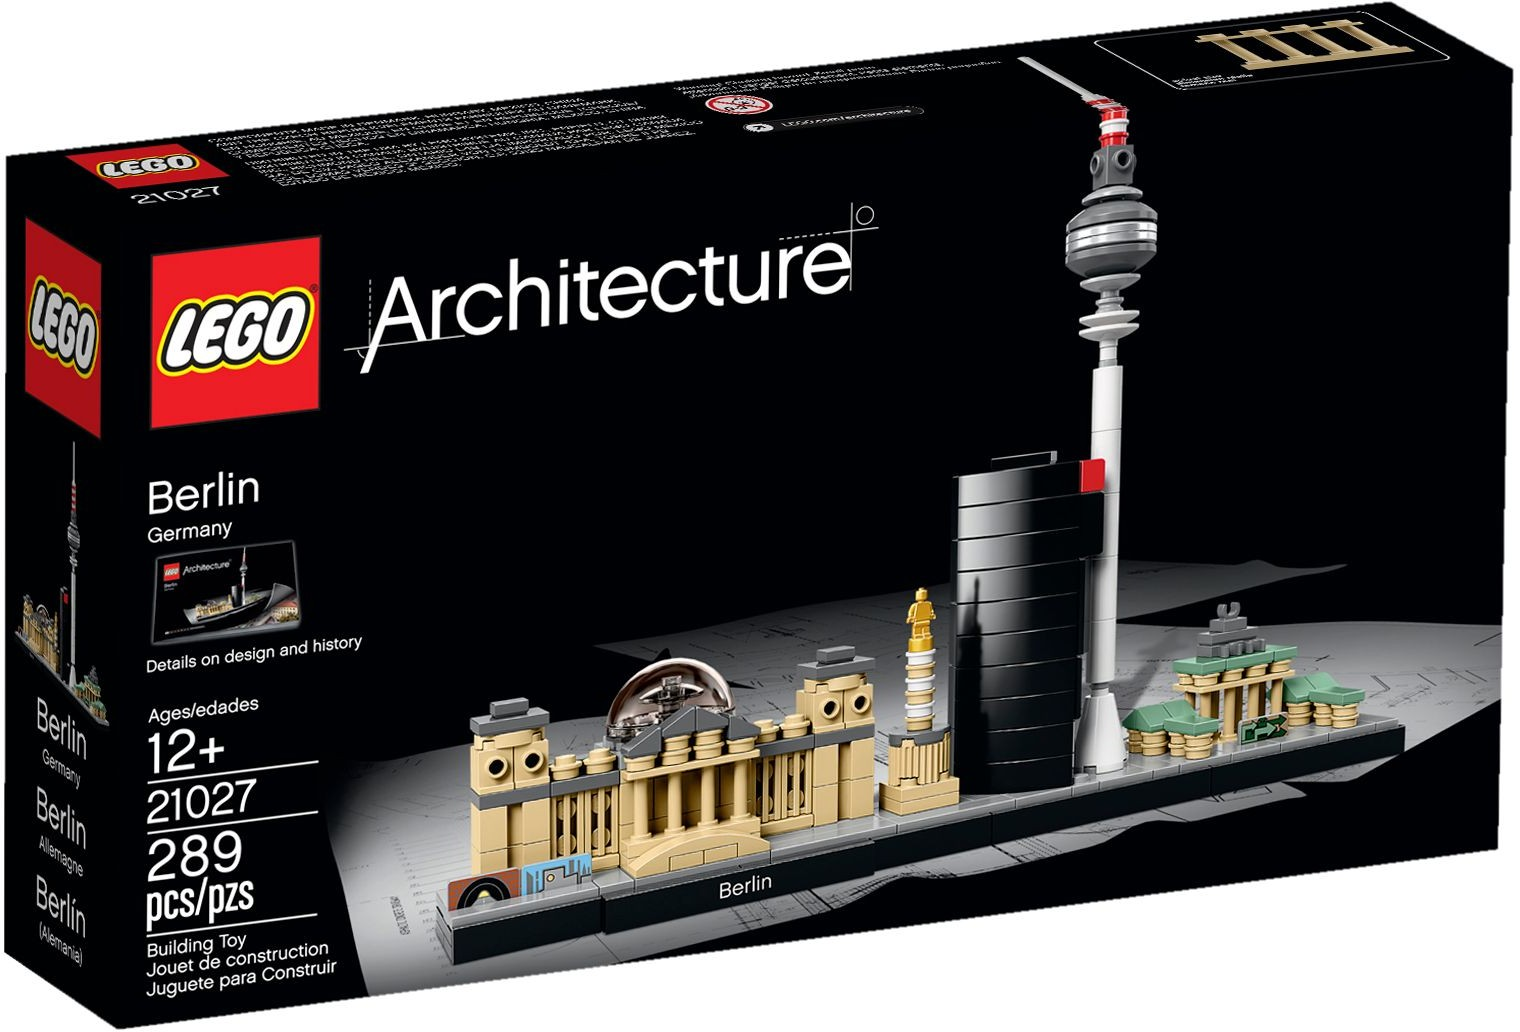 lego architecture 21027 pas cher berlin. Black Bedroom Furniture Sets. Home Design Ideas